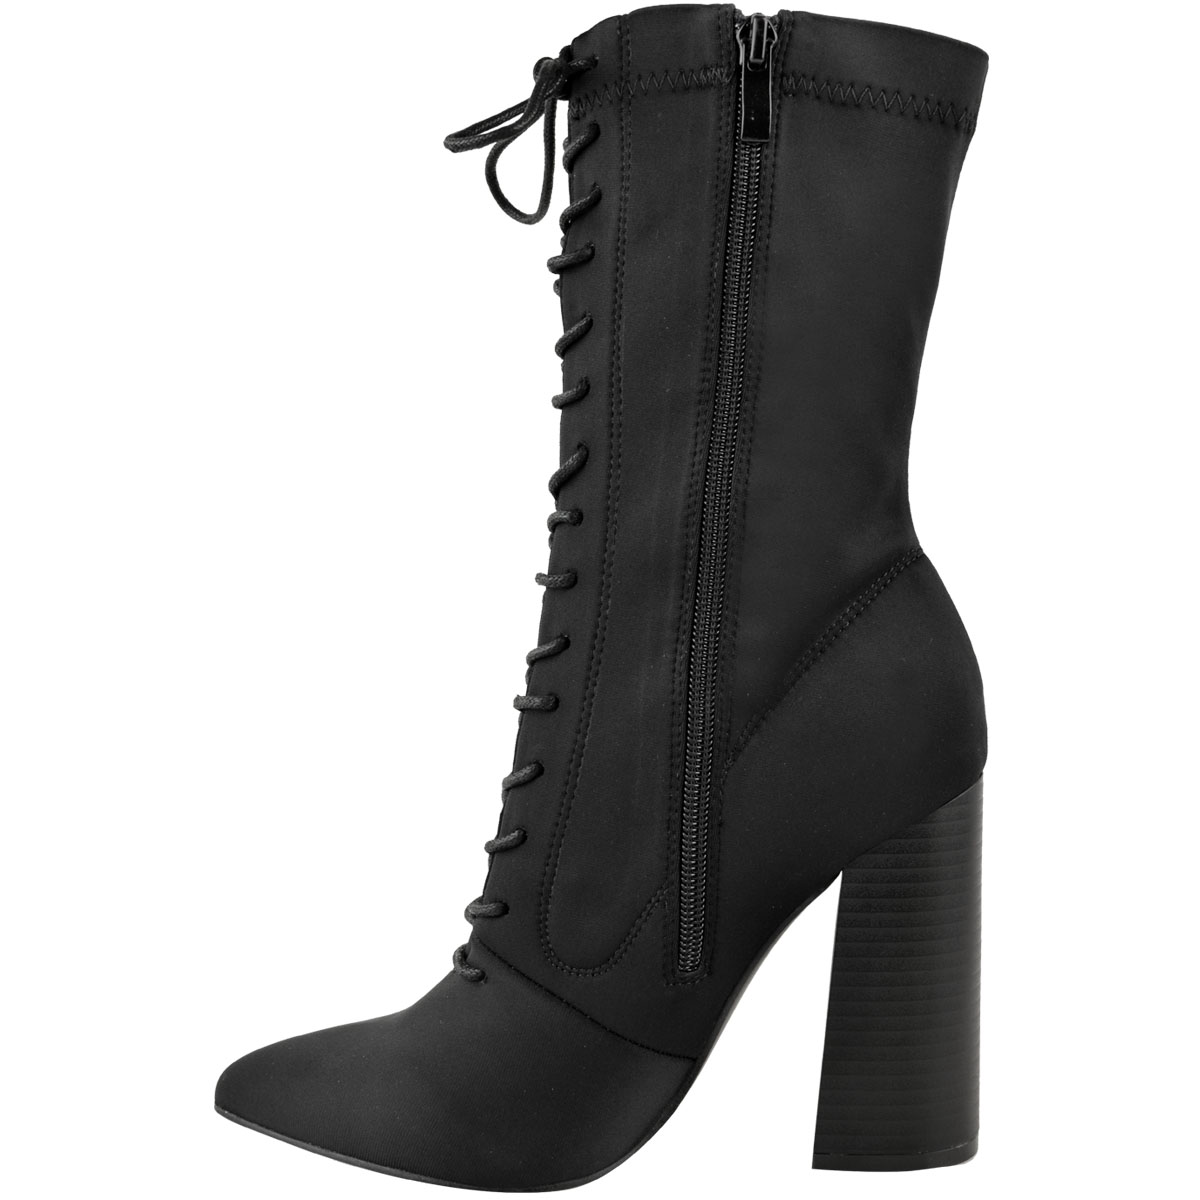 Womens-Ladies-New-Calf-Ankle-Boots-Lycra-Lace-Up-Shoes-Pointed-Toe-Stretch-Size miniatuur 4